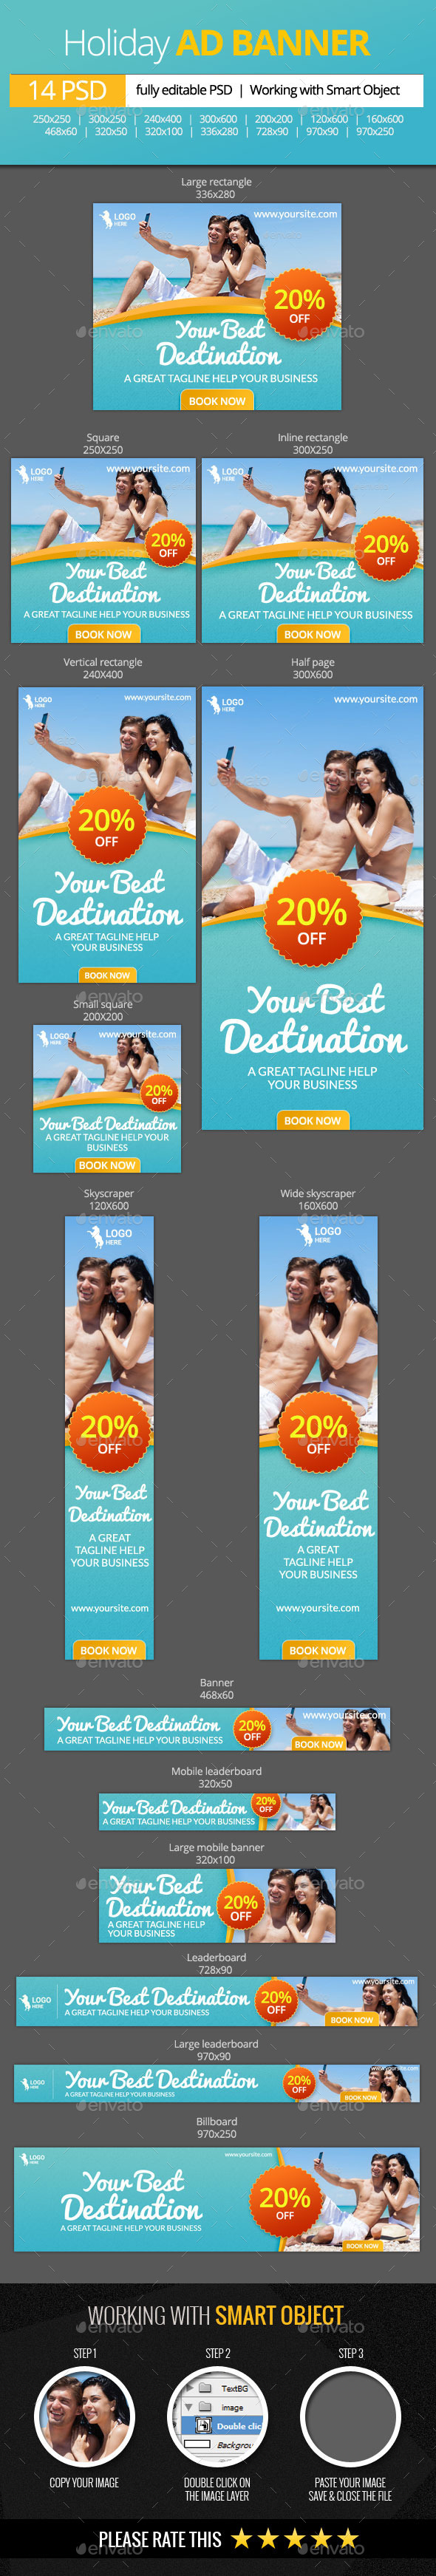 GraphicRiver Holiday Vacations Web Banners 11411356